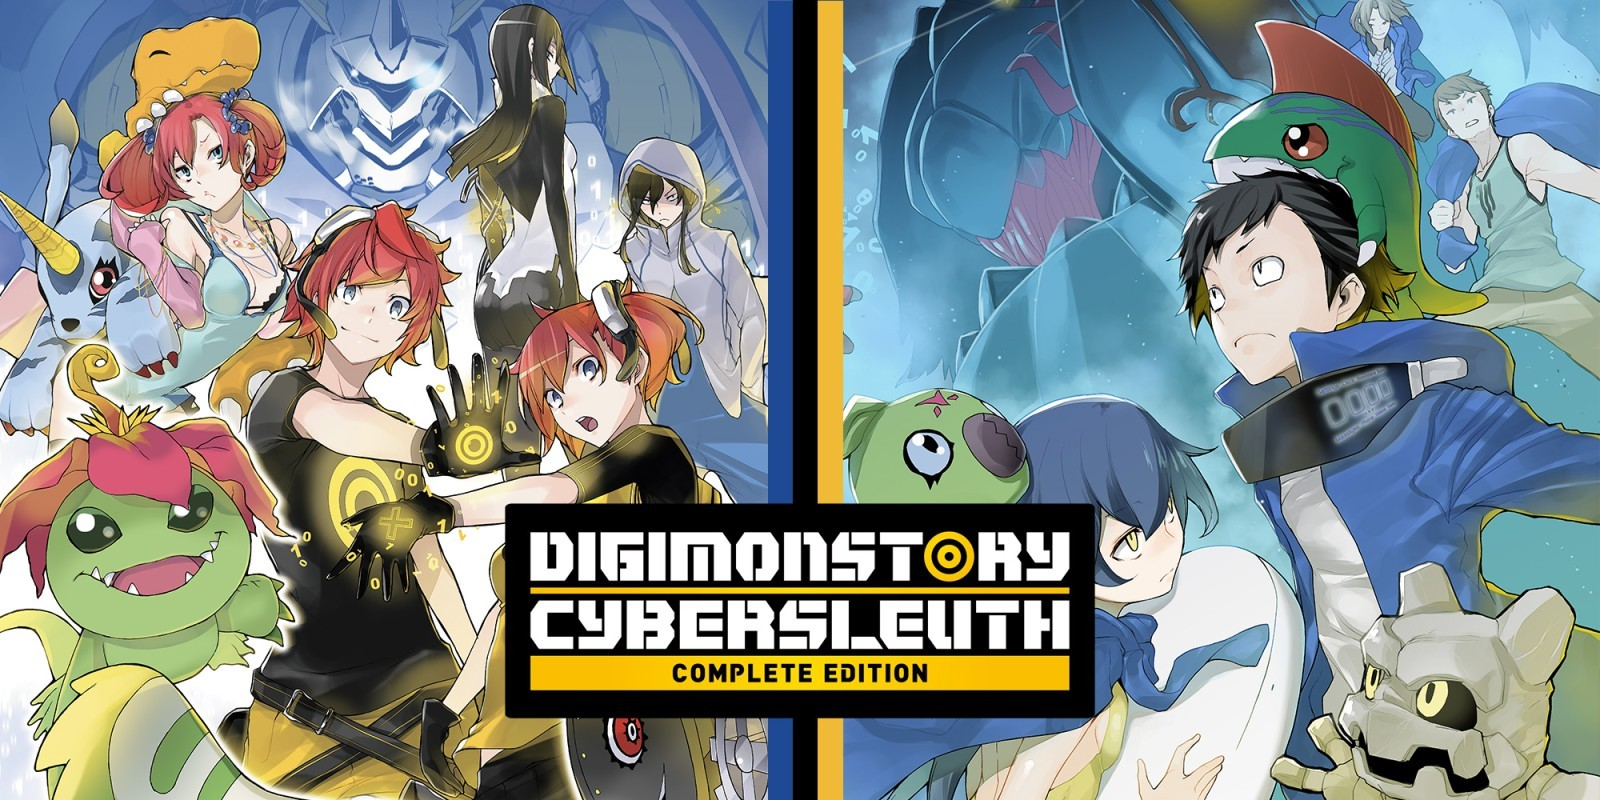 DIGIMON STORY CYBER SLUTH - Complete Edition 5